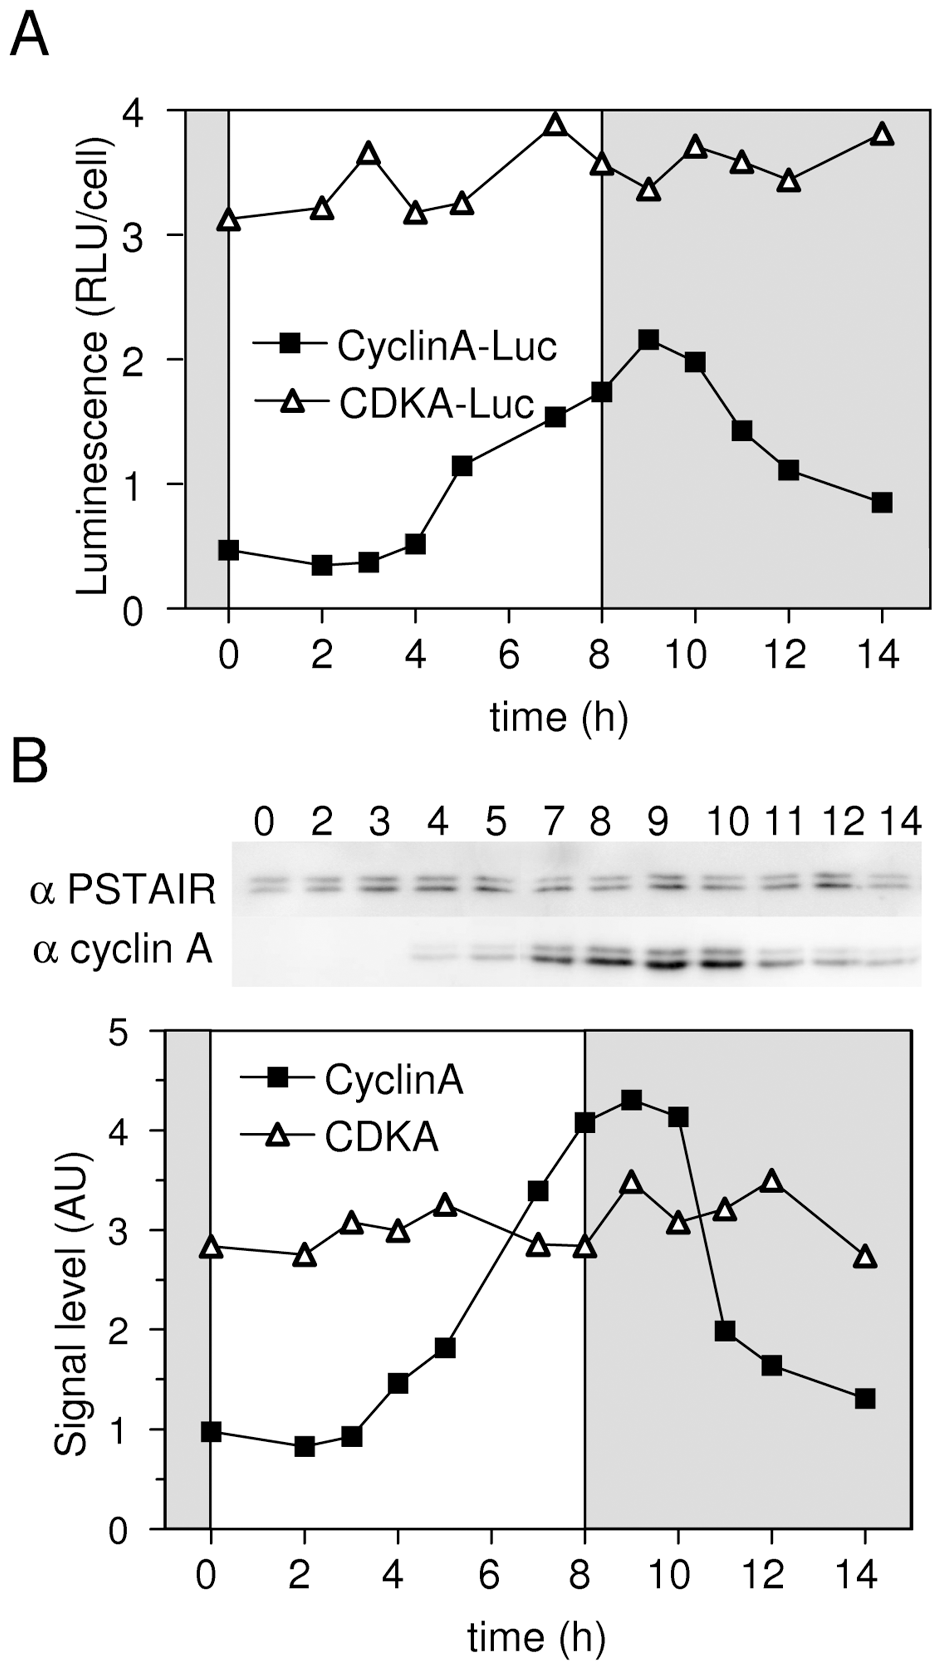 Validation of luciferase translational reporters to estimate CyclinA and CDKA levels in protein extracts.